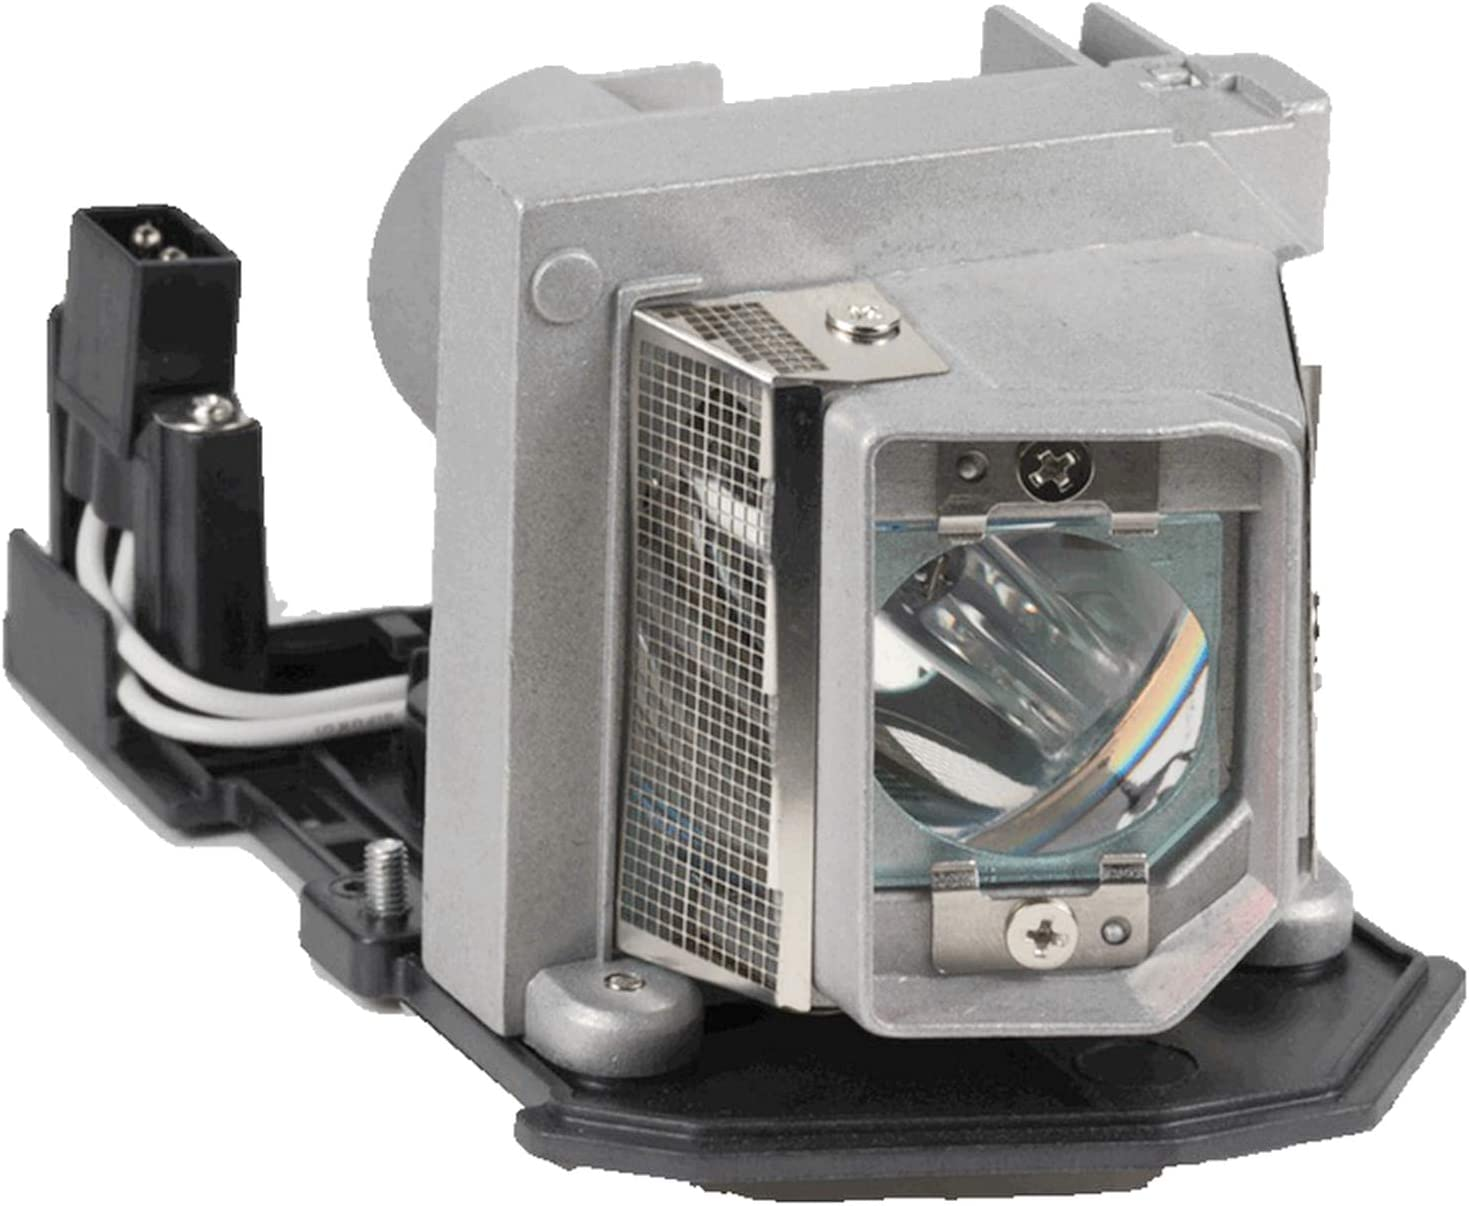 CARSN BL-FU185A Projector Lamp w/Housing for Optoma DS316,DX319P,DX619,ES526,EX356,PRO150S,PRO250X,TS526,EW531,HD66,PRO350W Projector Replacement Lamp Bulb